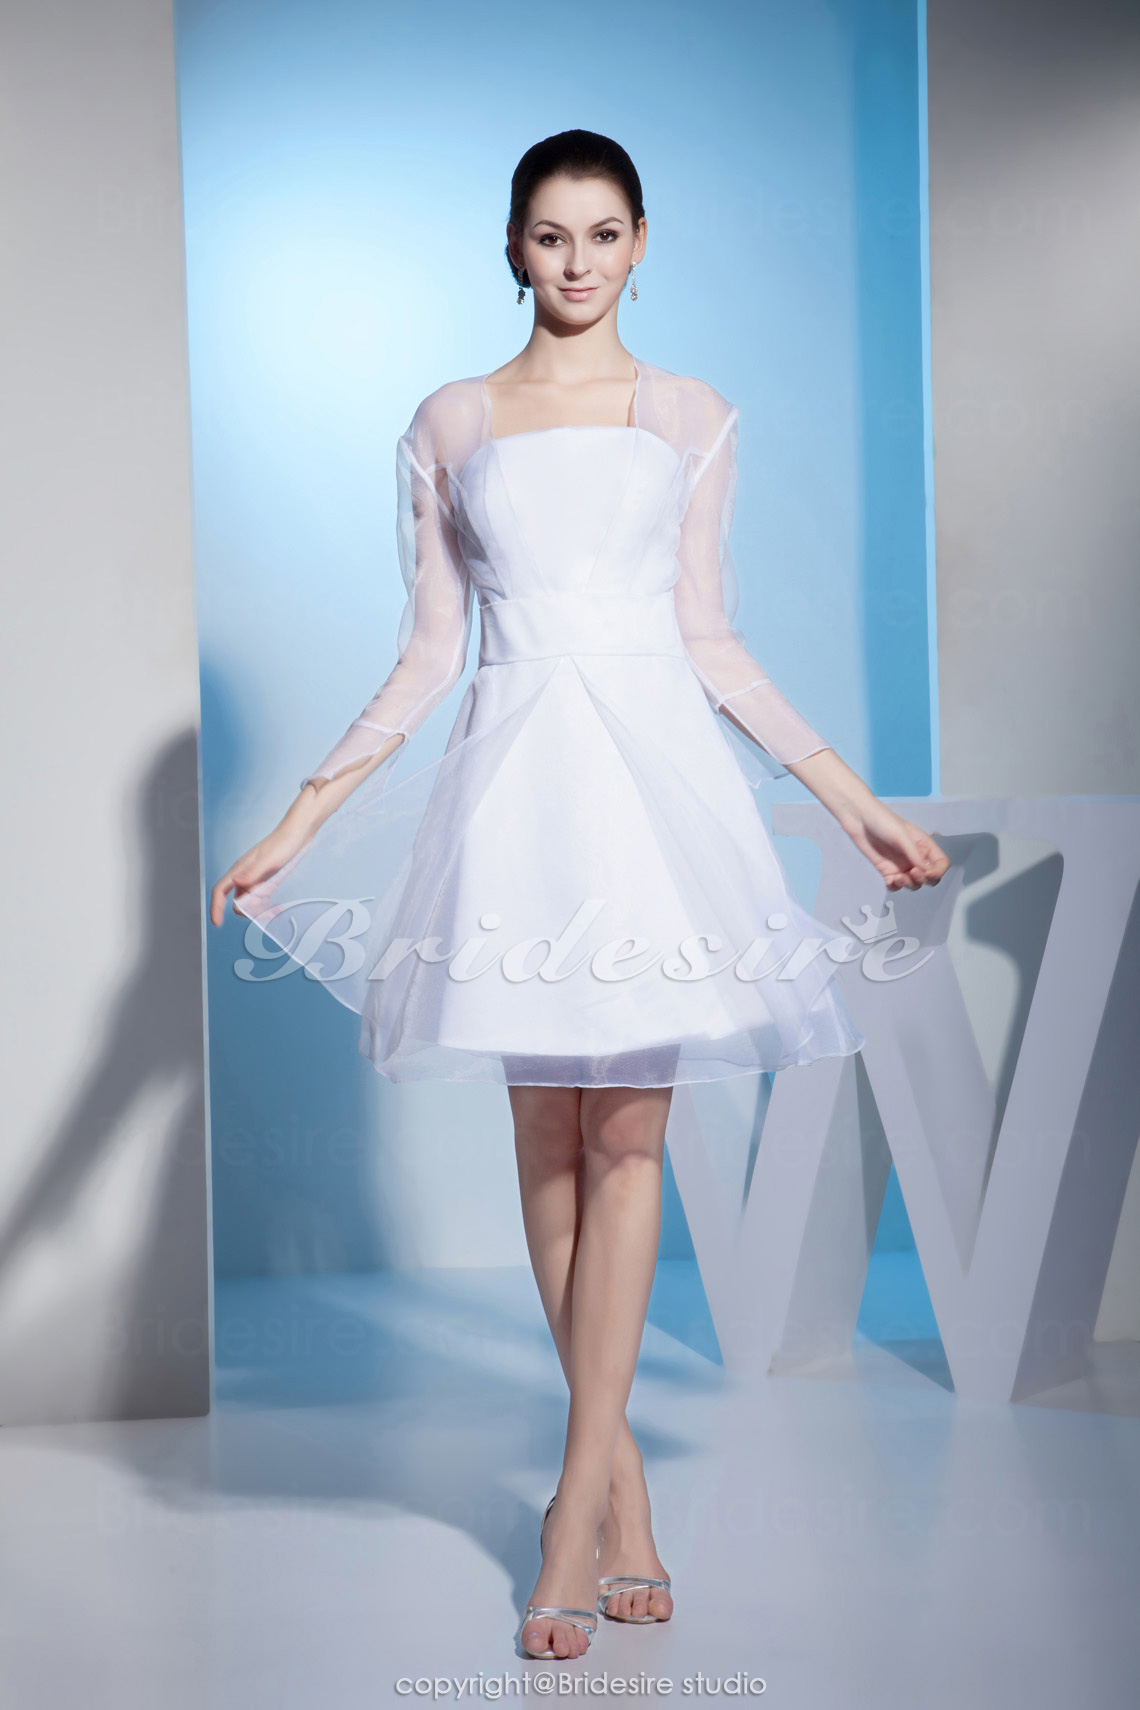 A-line Strapless Knee-length Long Sleeve Satin Chiffon Dress